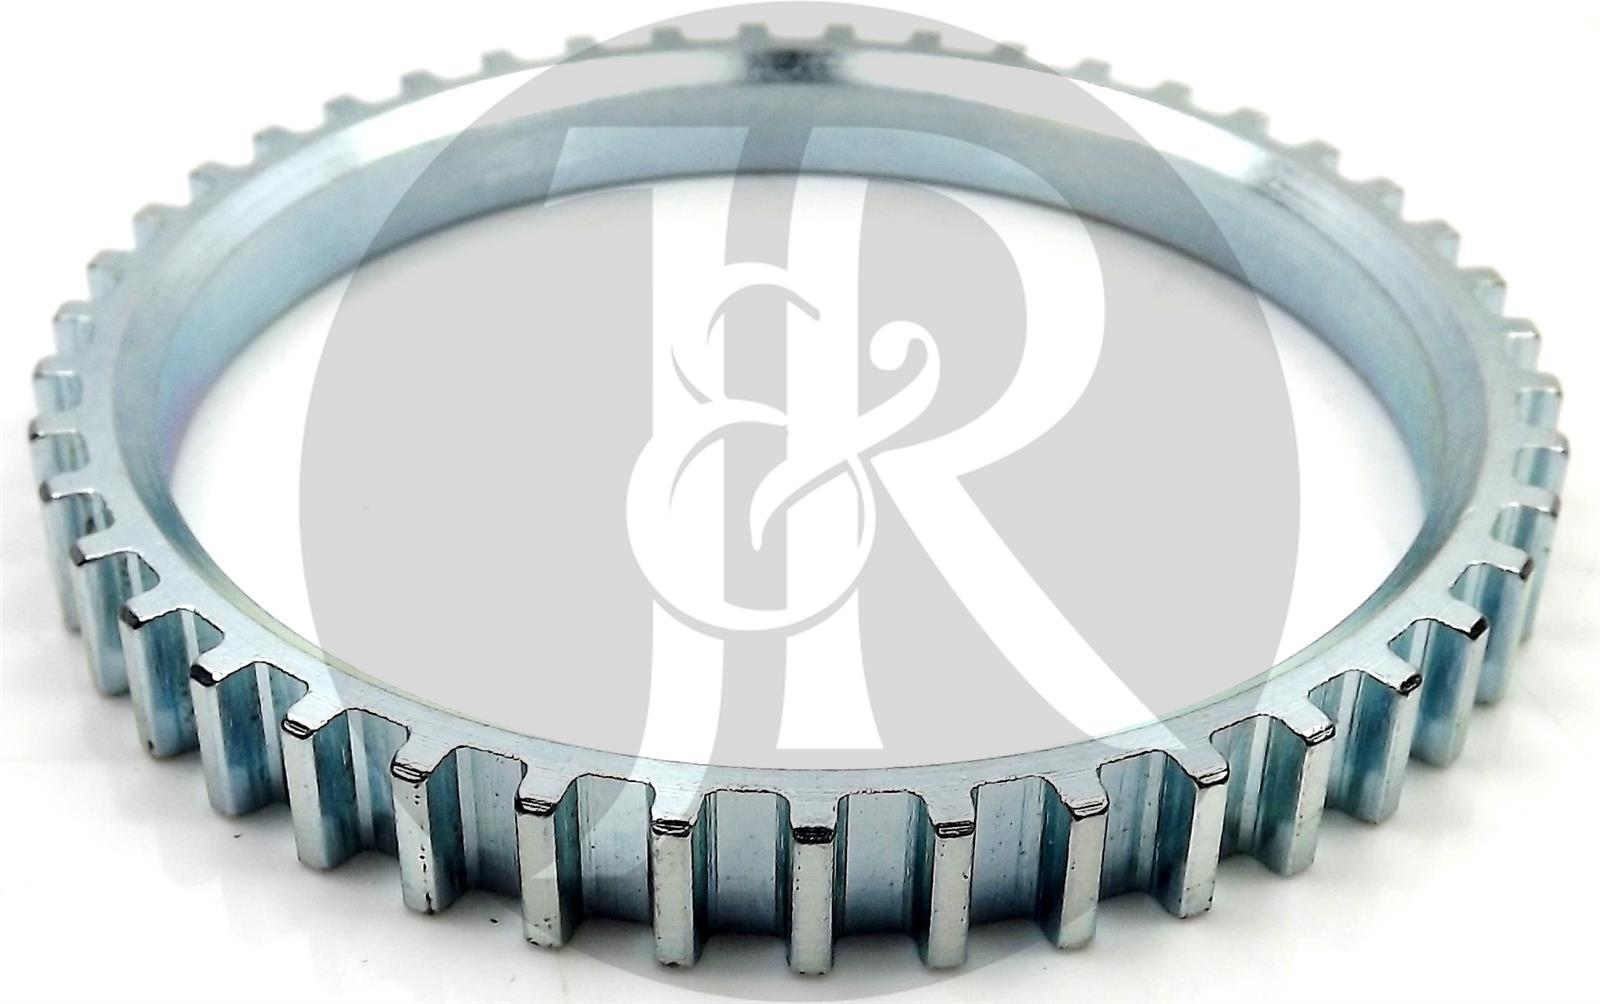 Abs Ring-Abs Reluctor Ring-Driveshaft Abs Ring J/&R